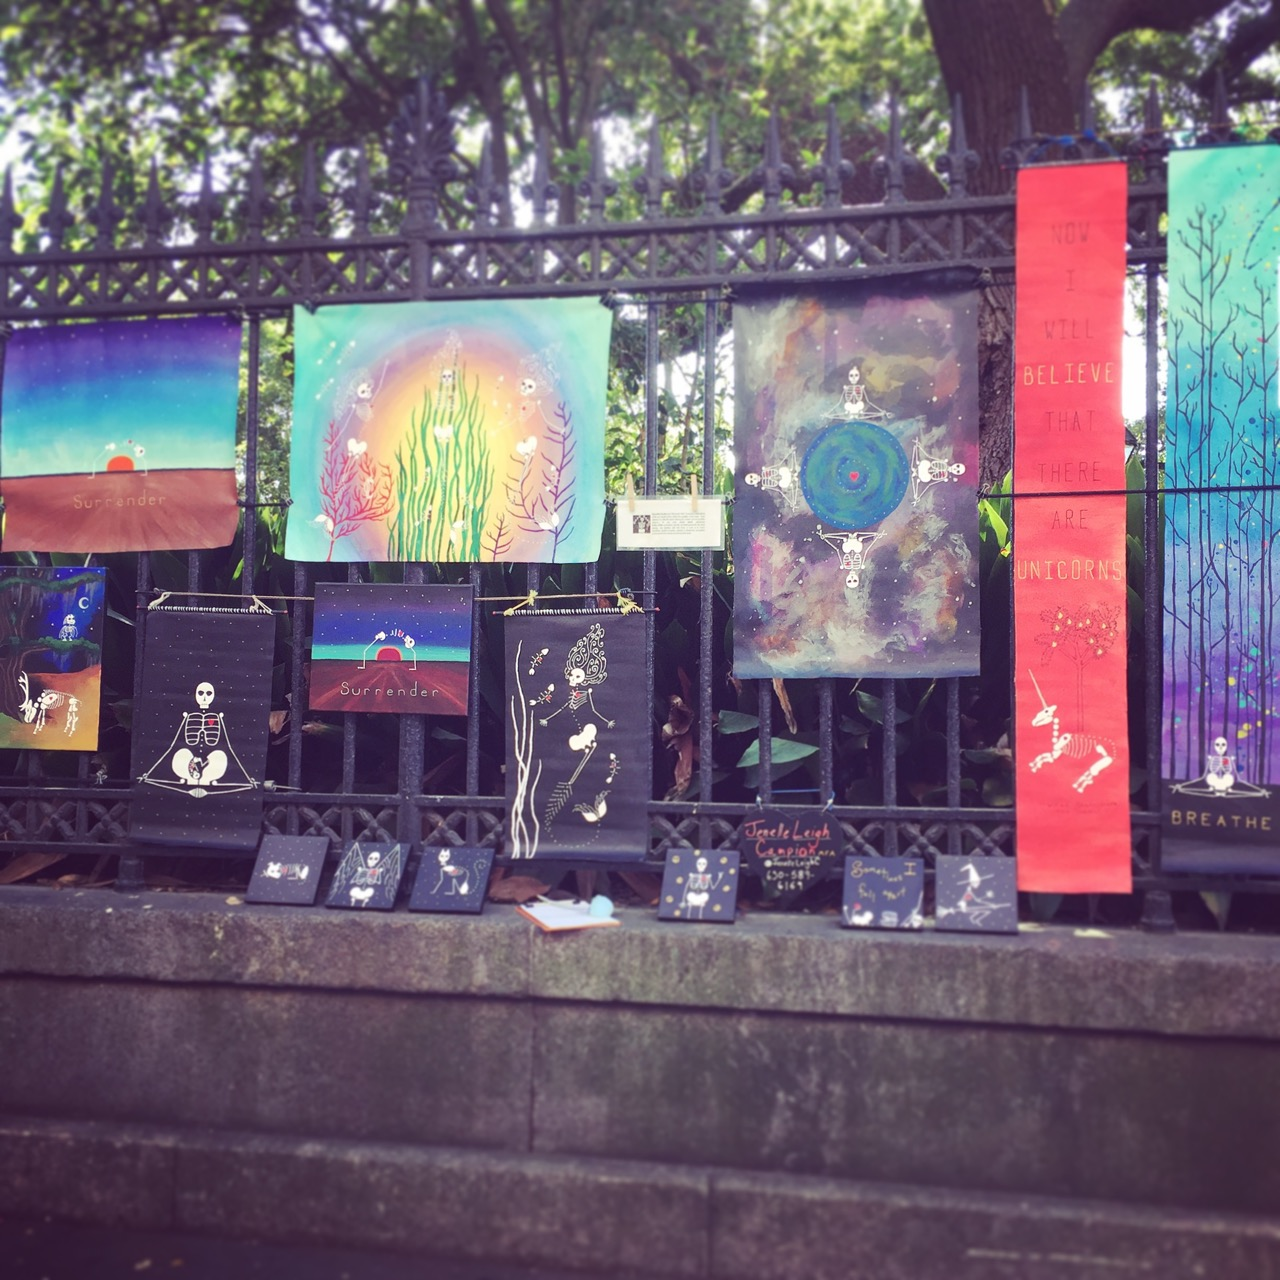 Jackson Square Display of Jenelle Leigh Campion's artwork